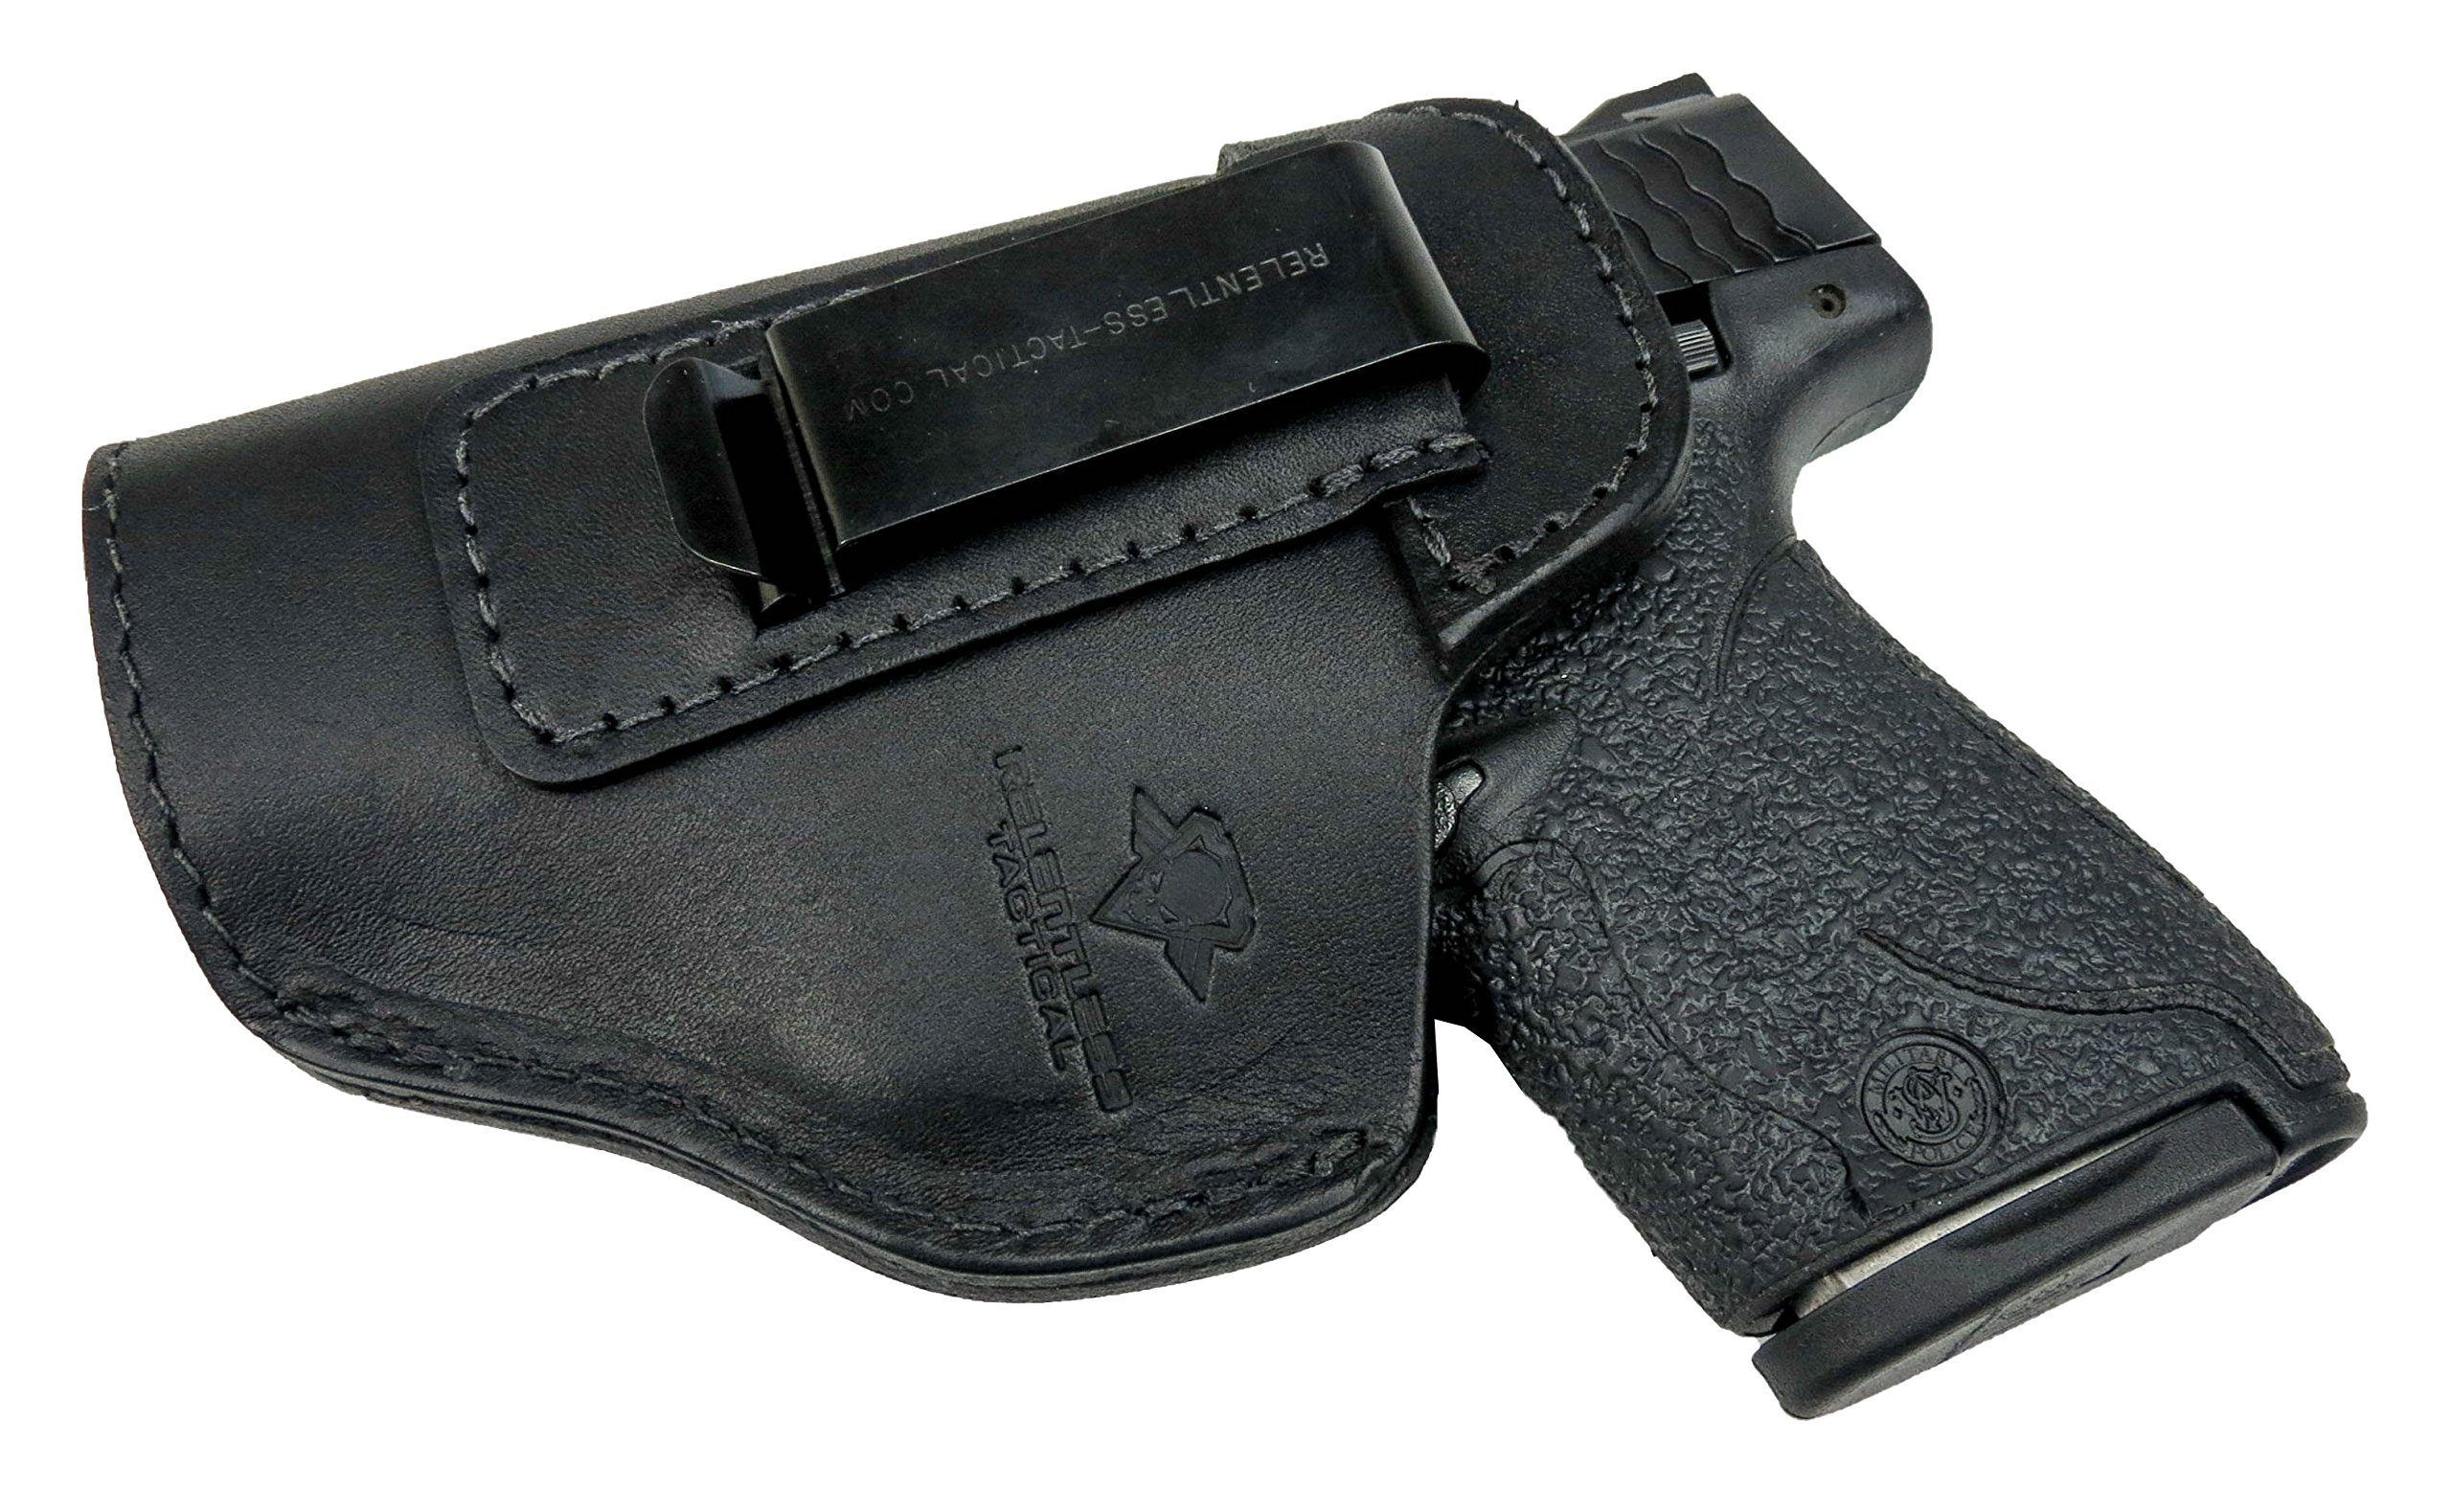 Relentless Tactical The Defender Leather IWB Holster - Made in USA - for S&W M&P Shield - Glock 17 19 22 23 32 33/Springfield XD & XDS/Plus All Similar Sized Handguns – Black – Left Handed